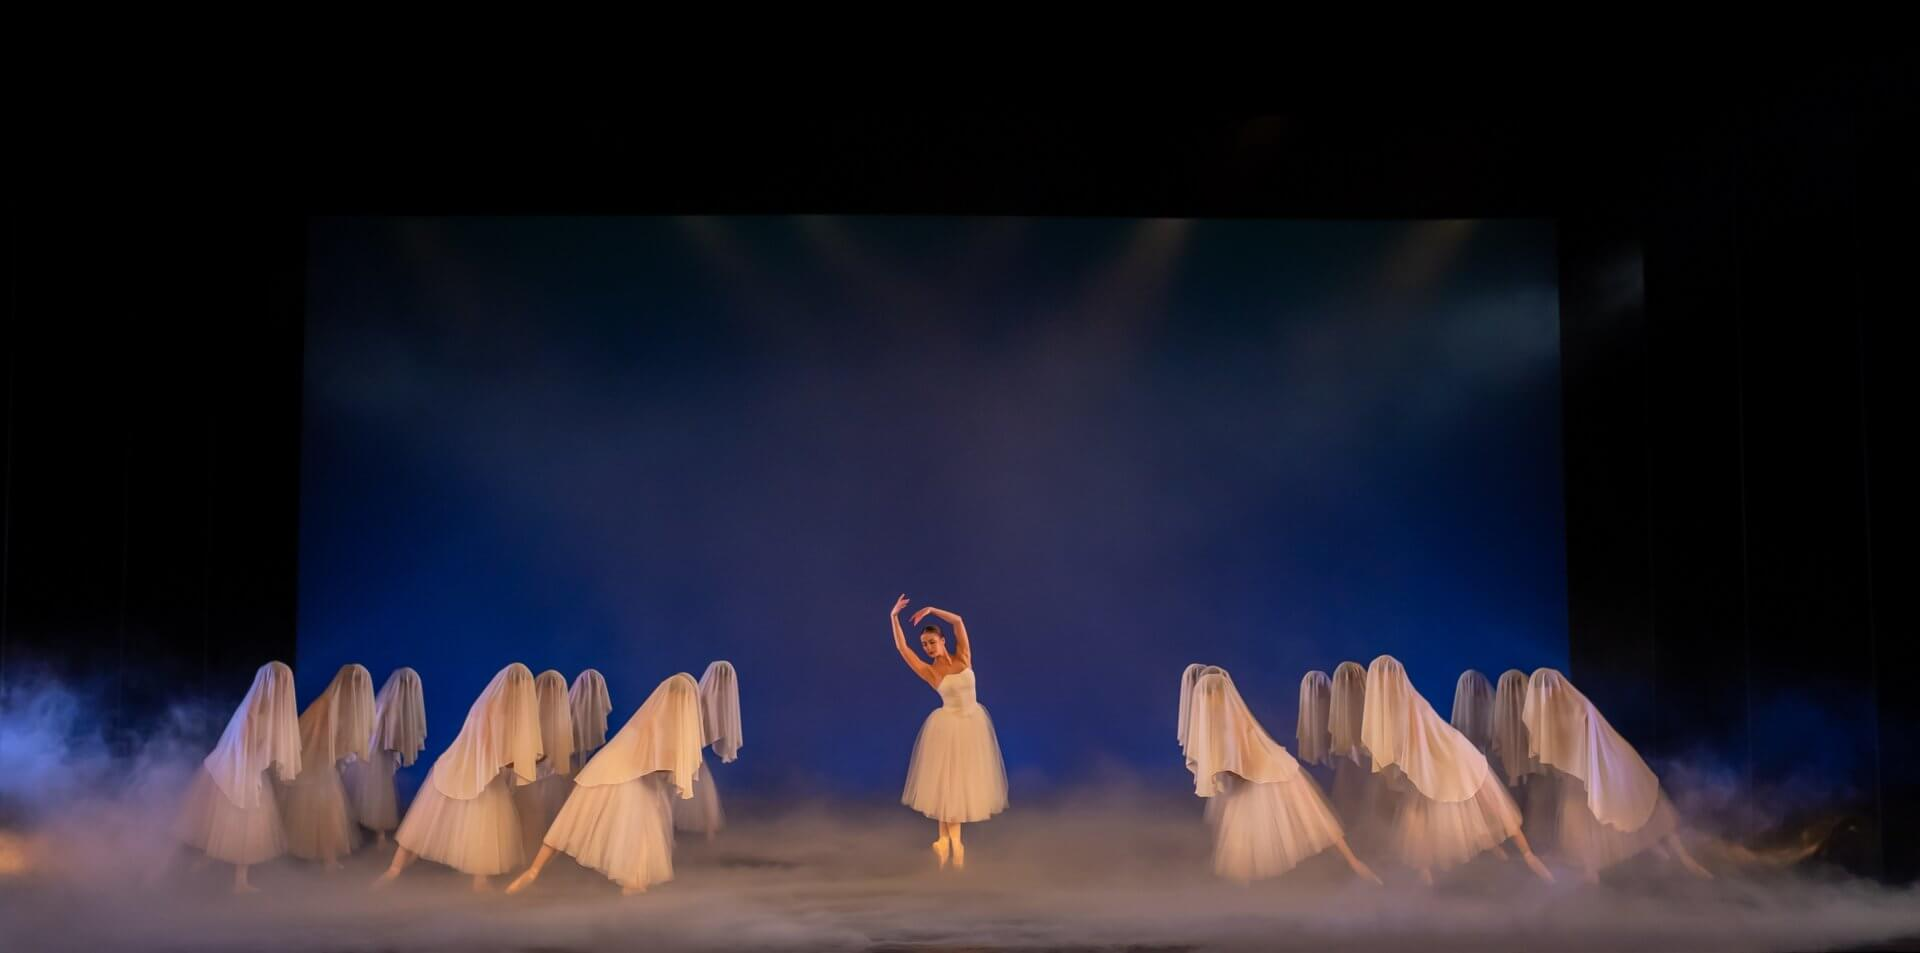 A scene from the ballet Giselle with a ballerina in long white tutu at centre stage with dancers in lines at either side, all wearing white tutus and veils draped over their heads